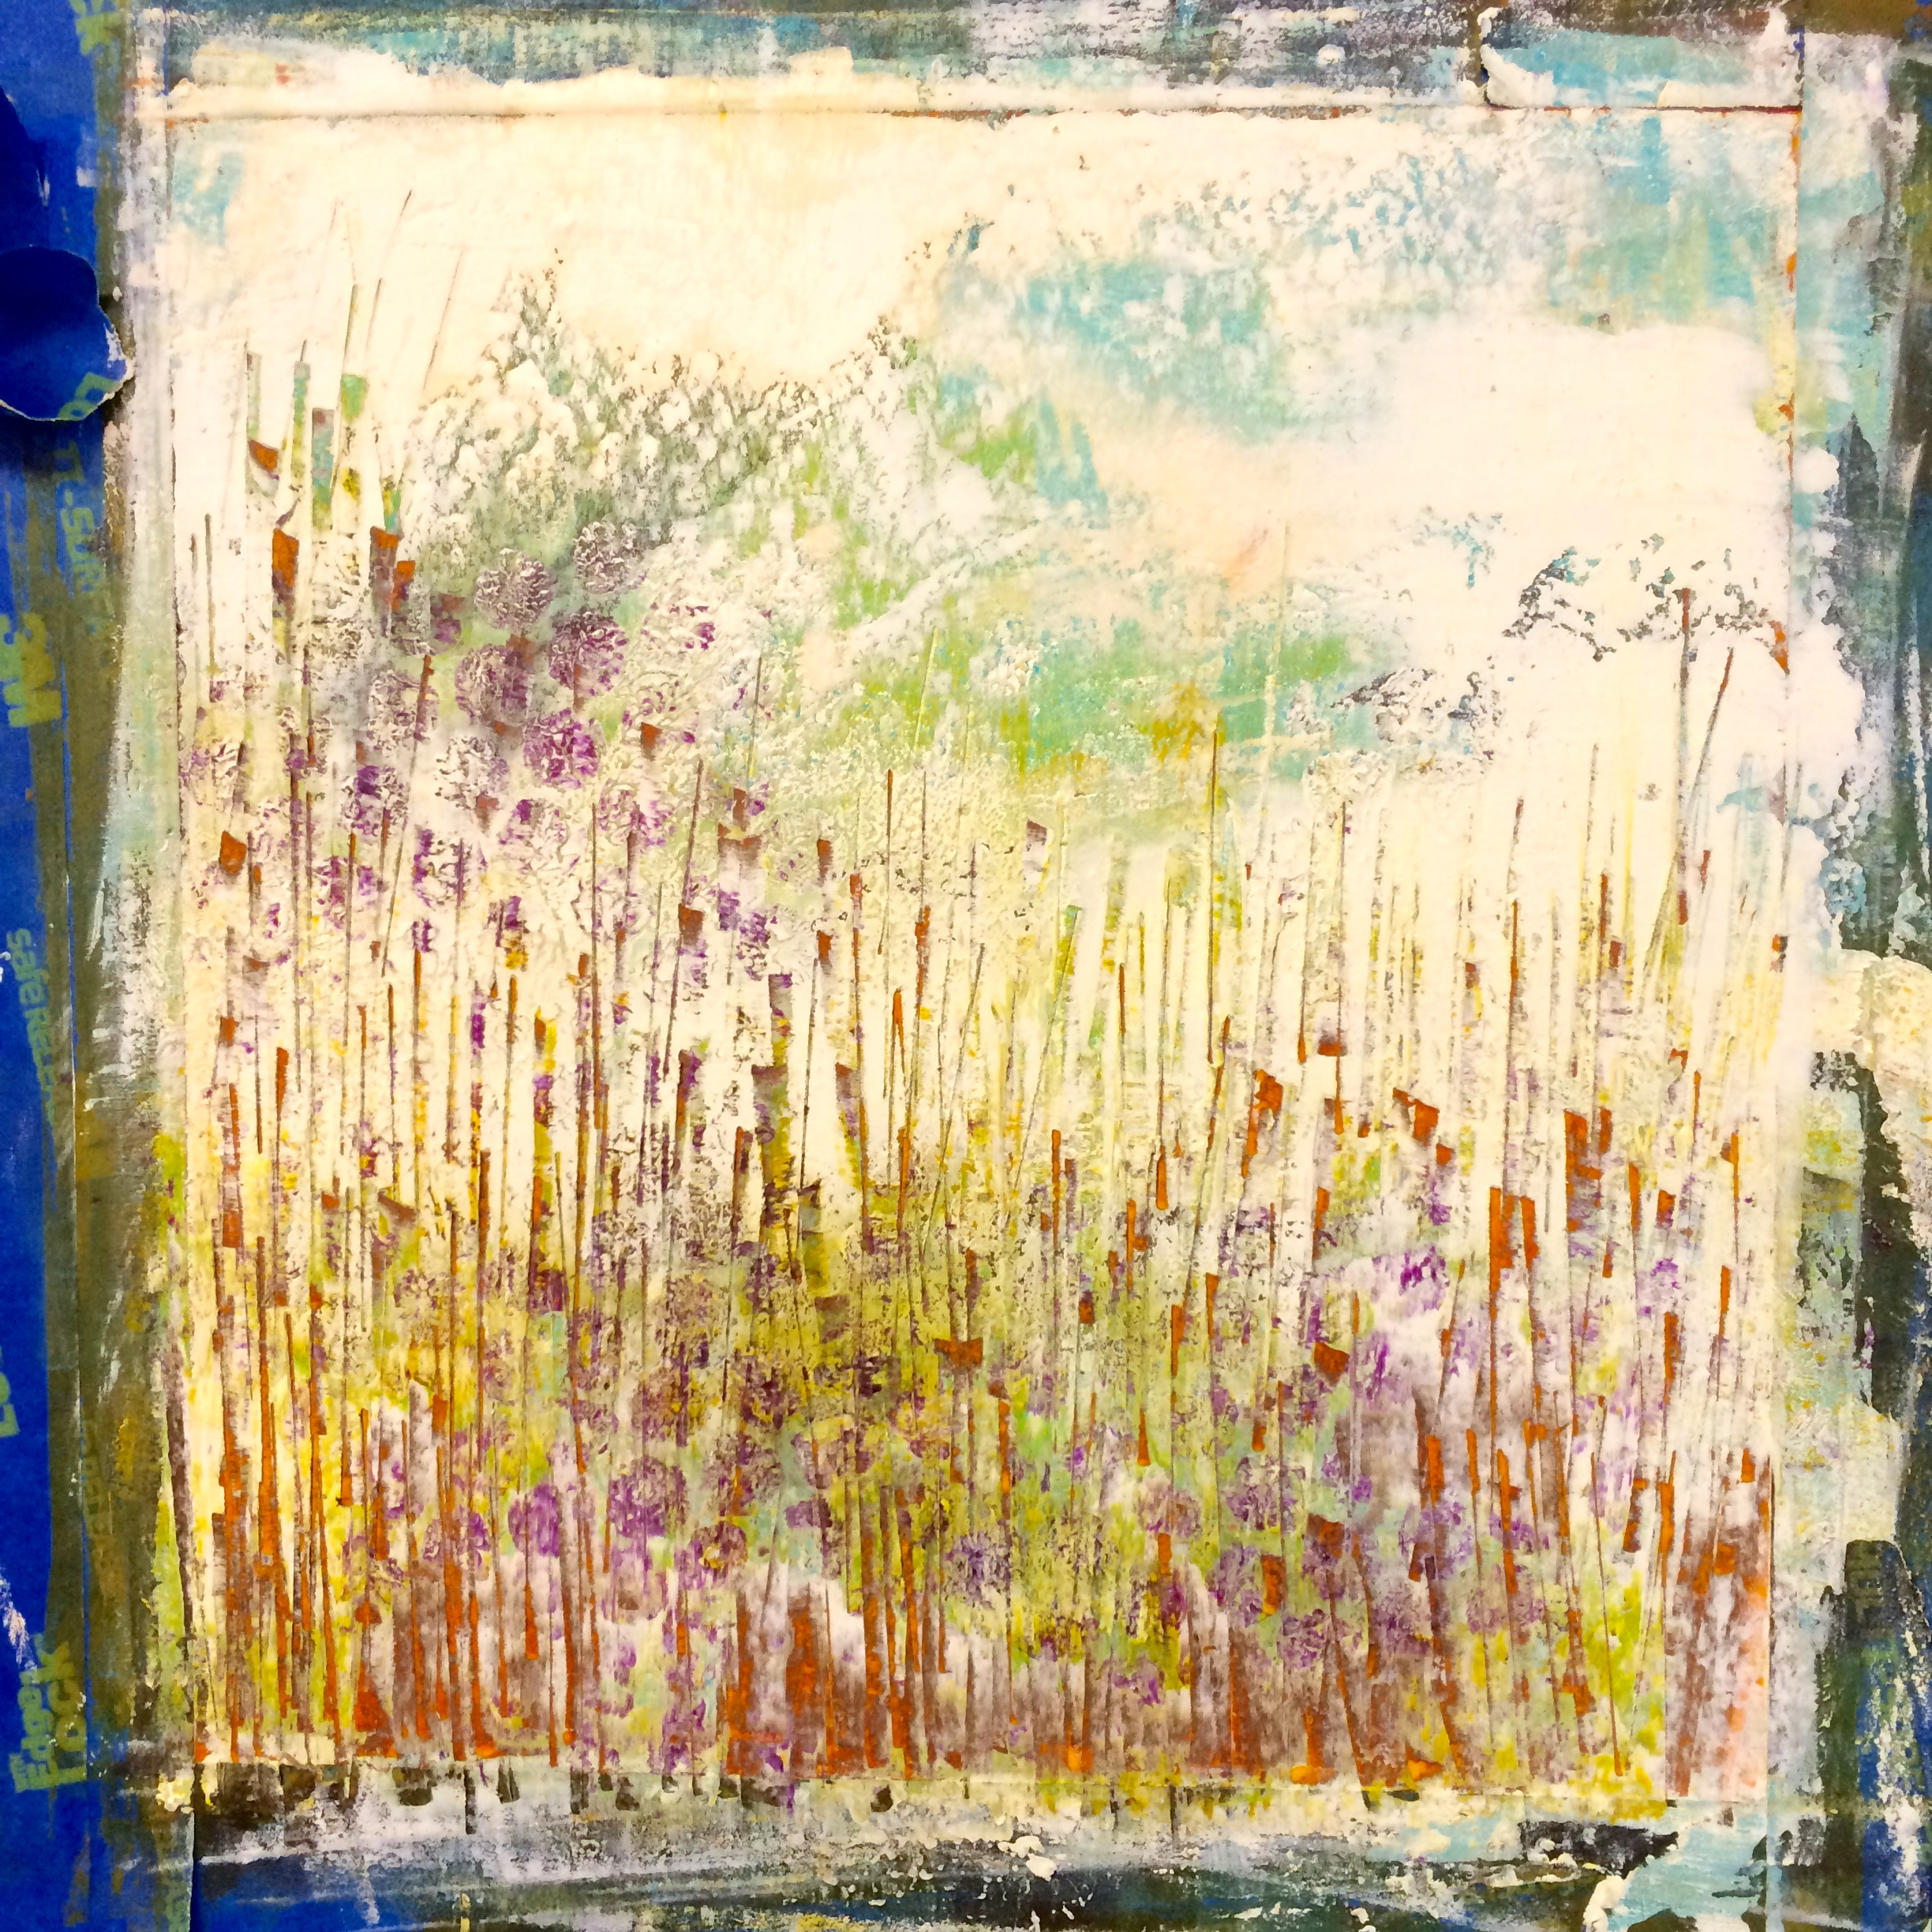 a small painting on paper has about 10 layers of pigment and wax; scraping and scratching reveals underlying colors.